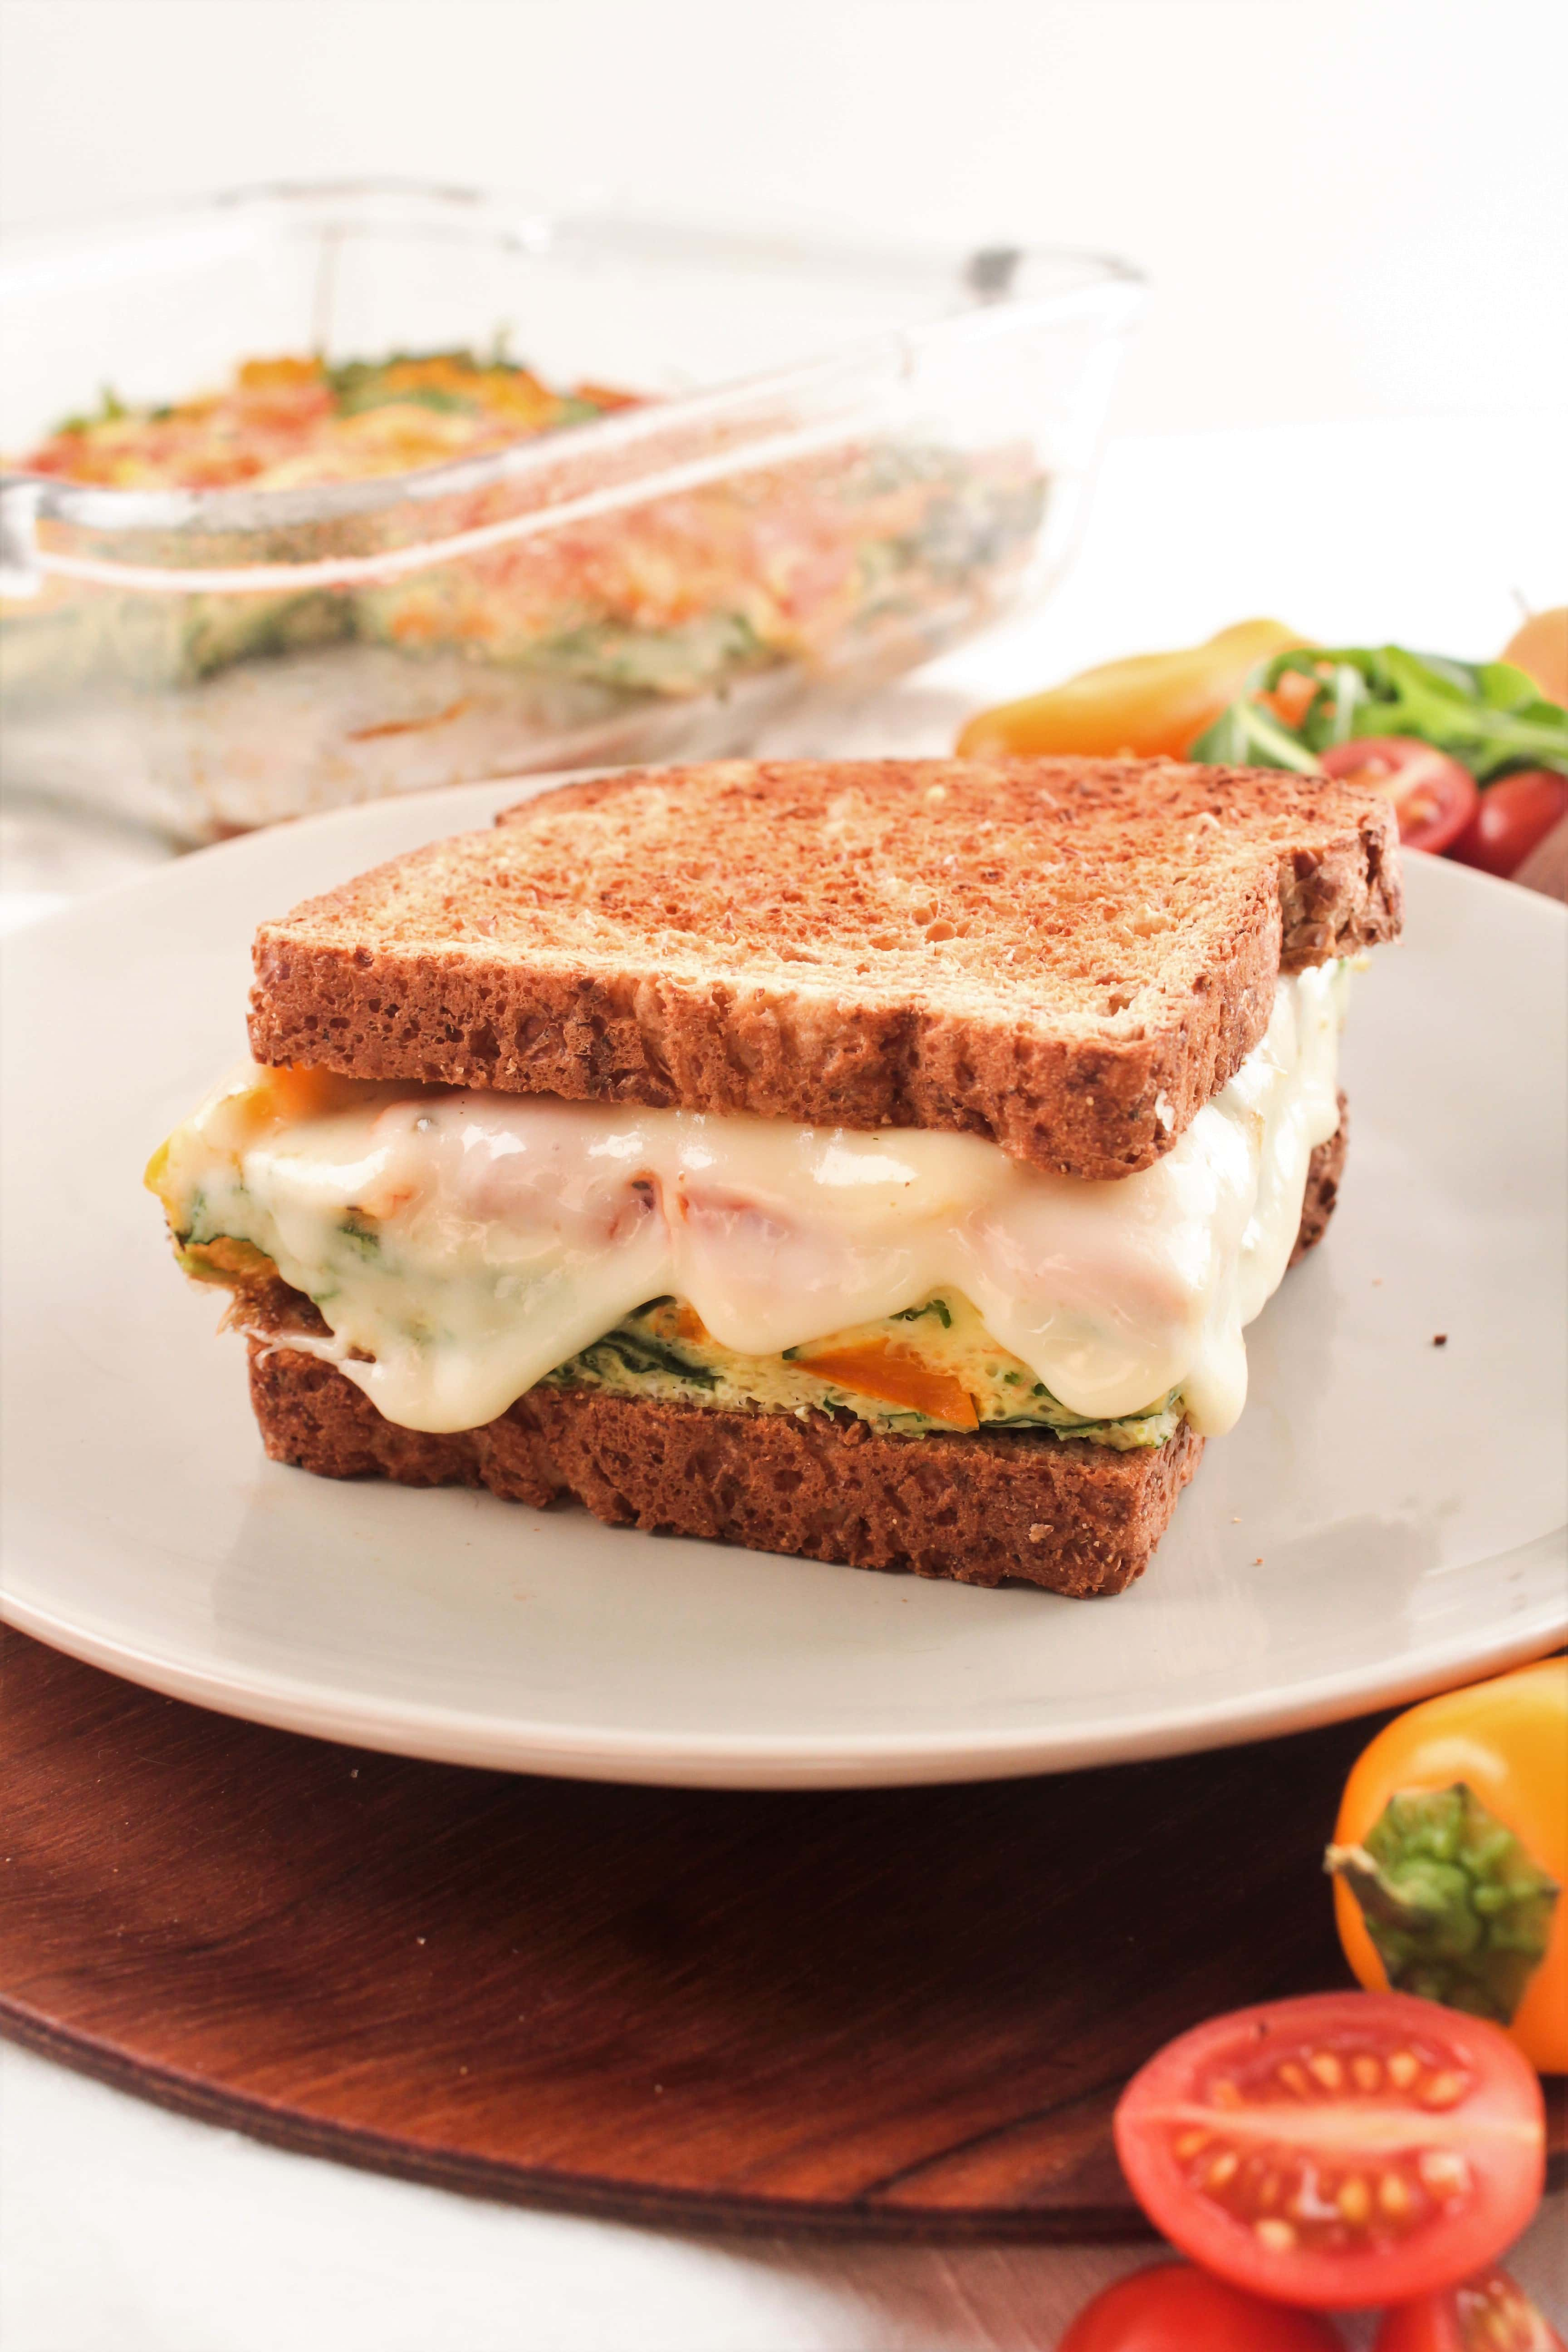 Make Ahead Veggie Egg Sandwiches